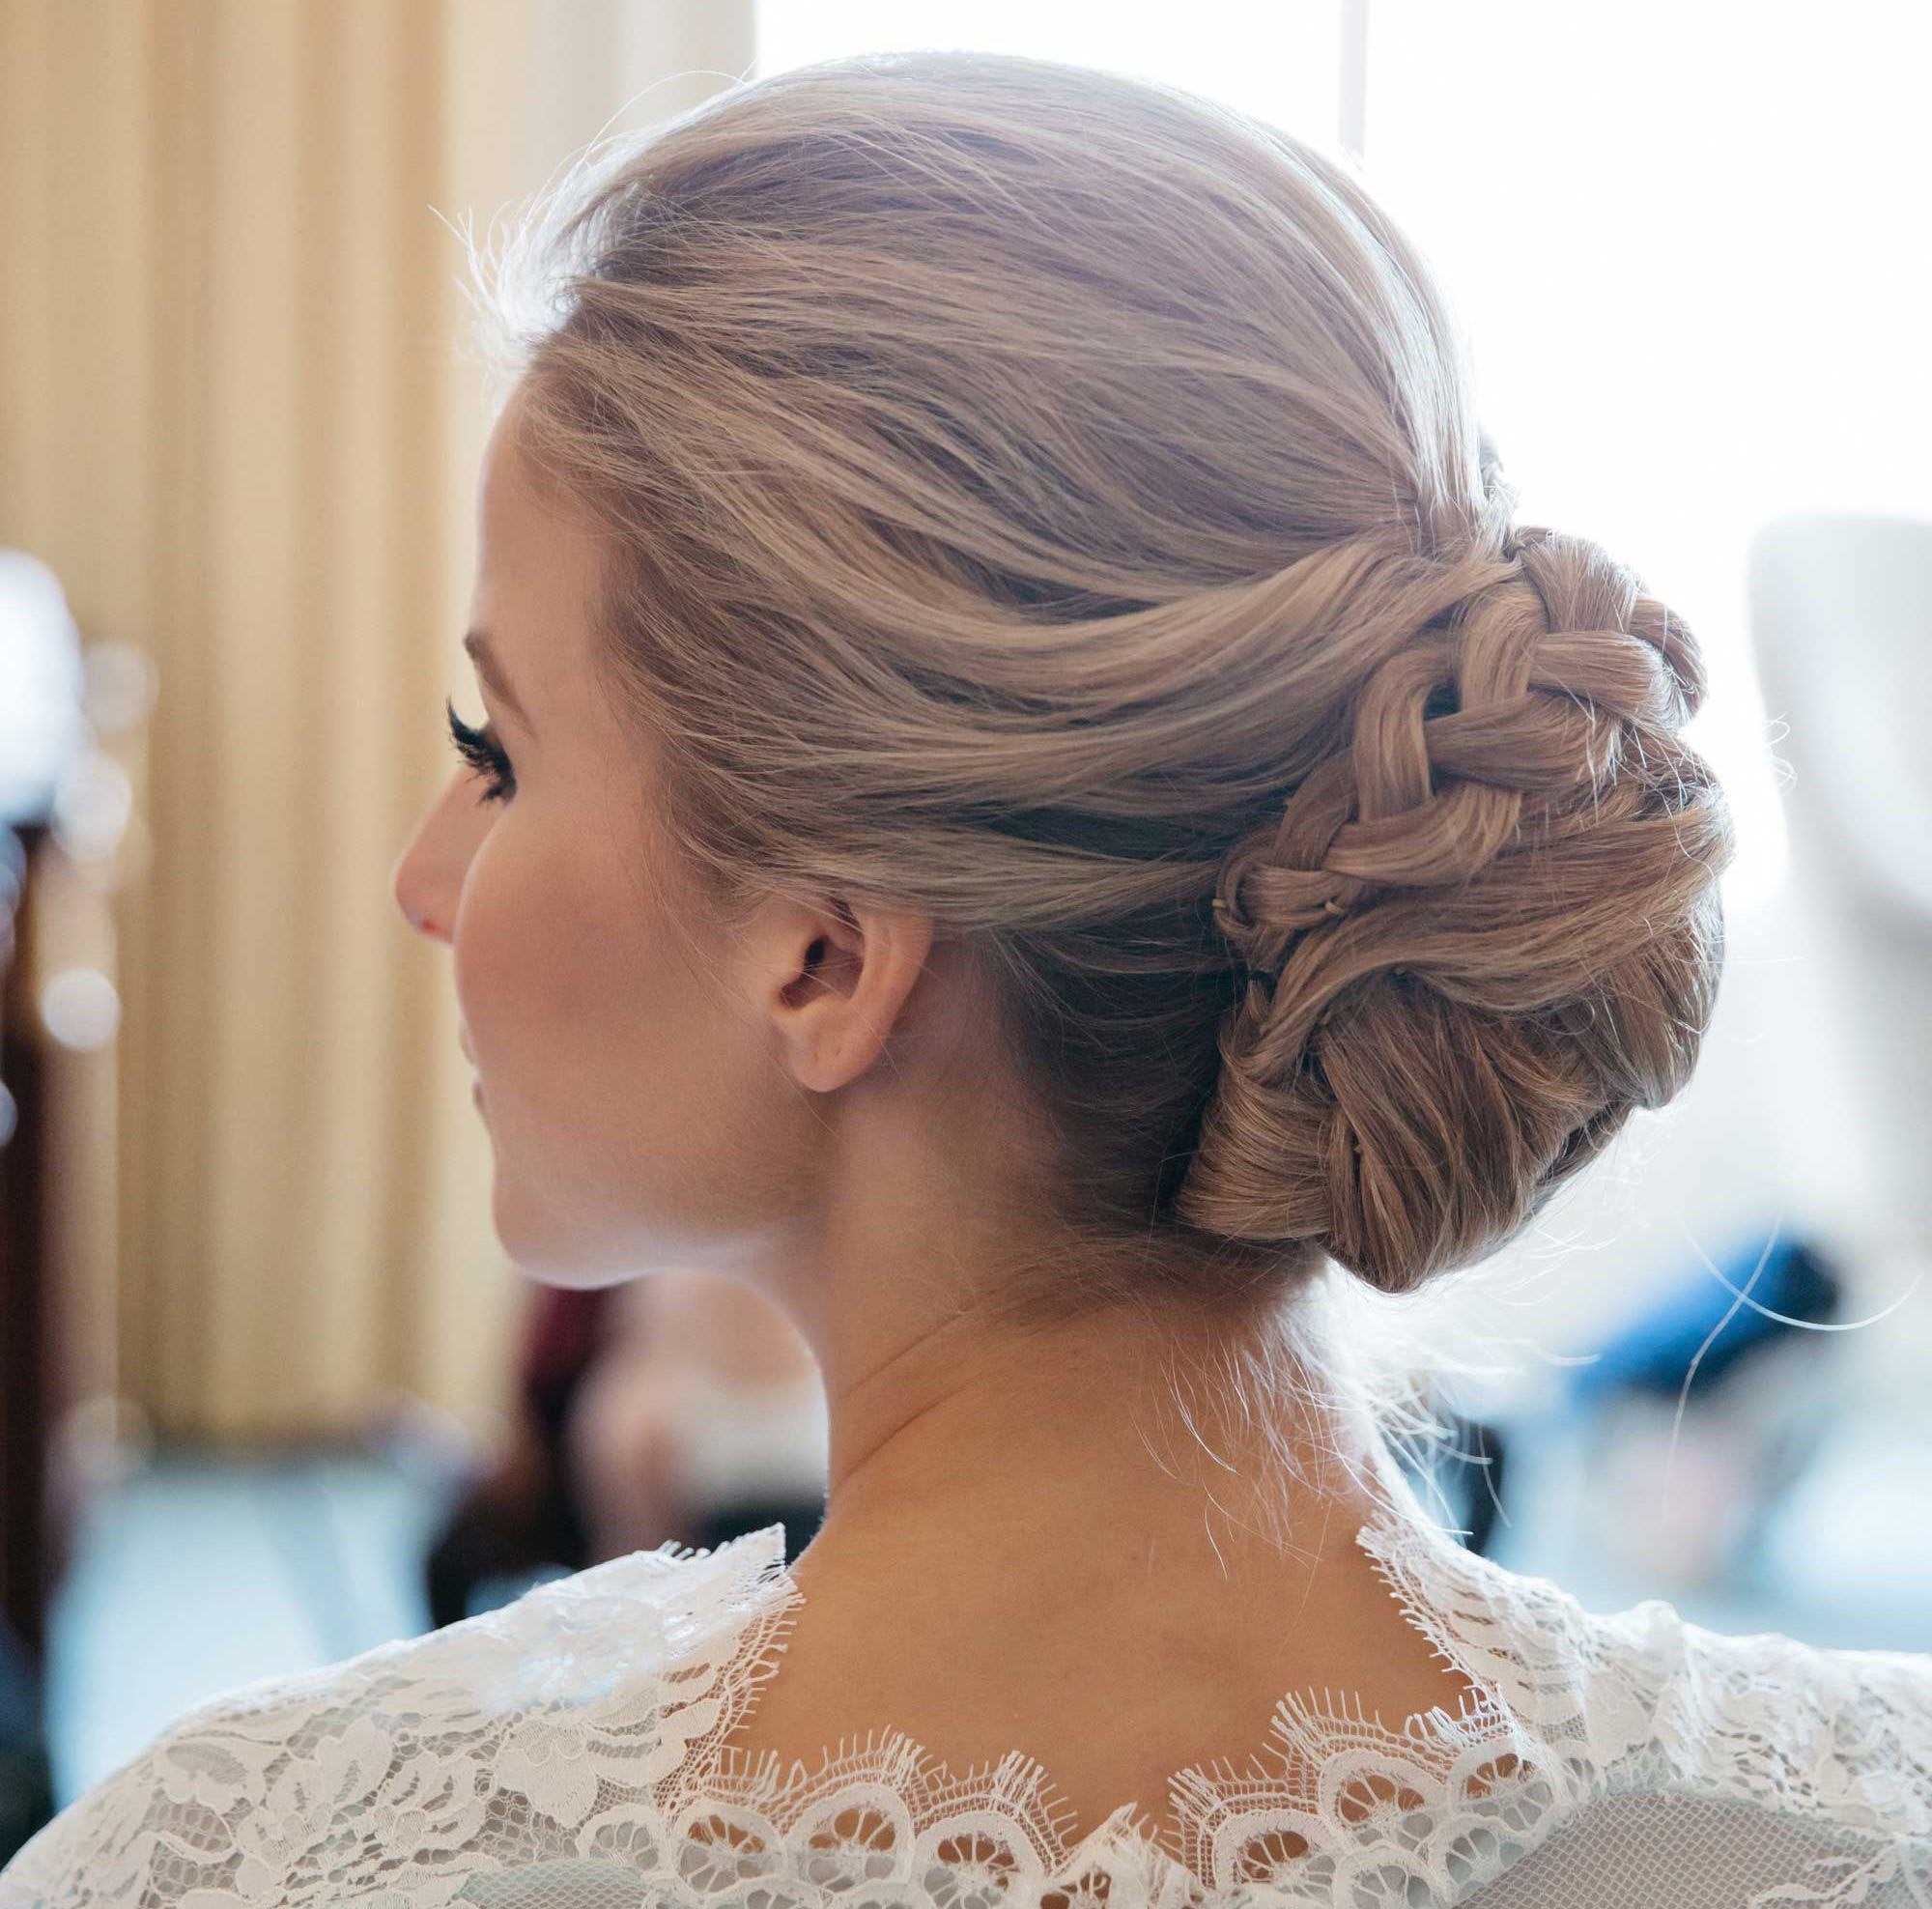 2017 Wedding Hairstyles With Braids With Braided Hairstyles: 5 Ideas For Your Wedding Look – Inside Weddings (View 1 of 15)